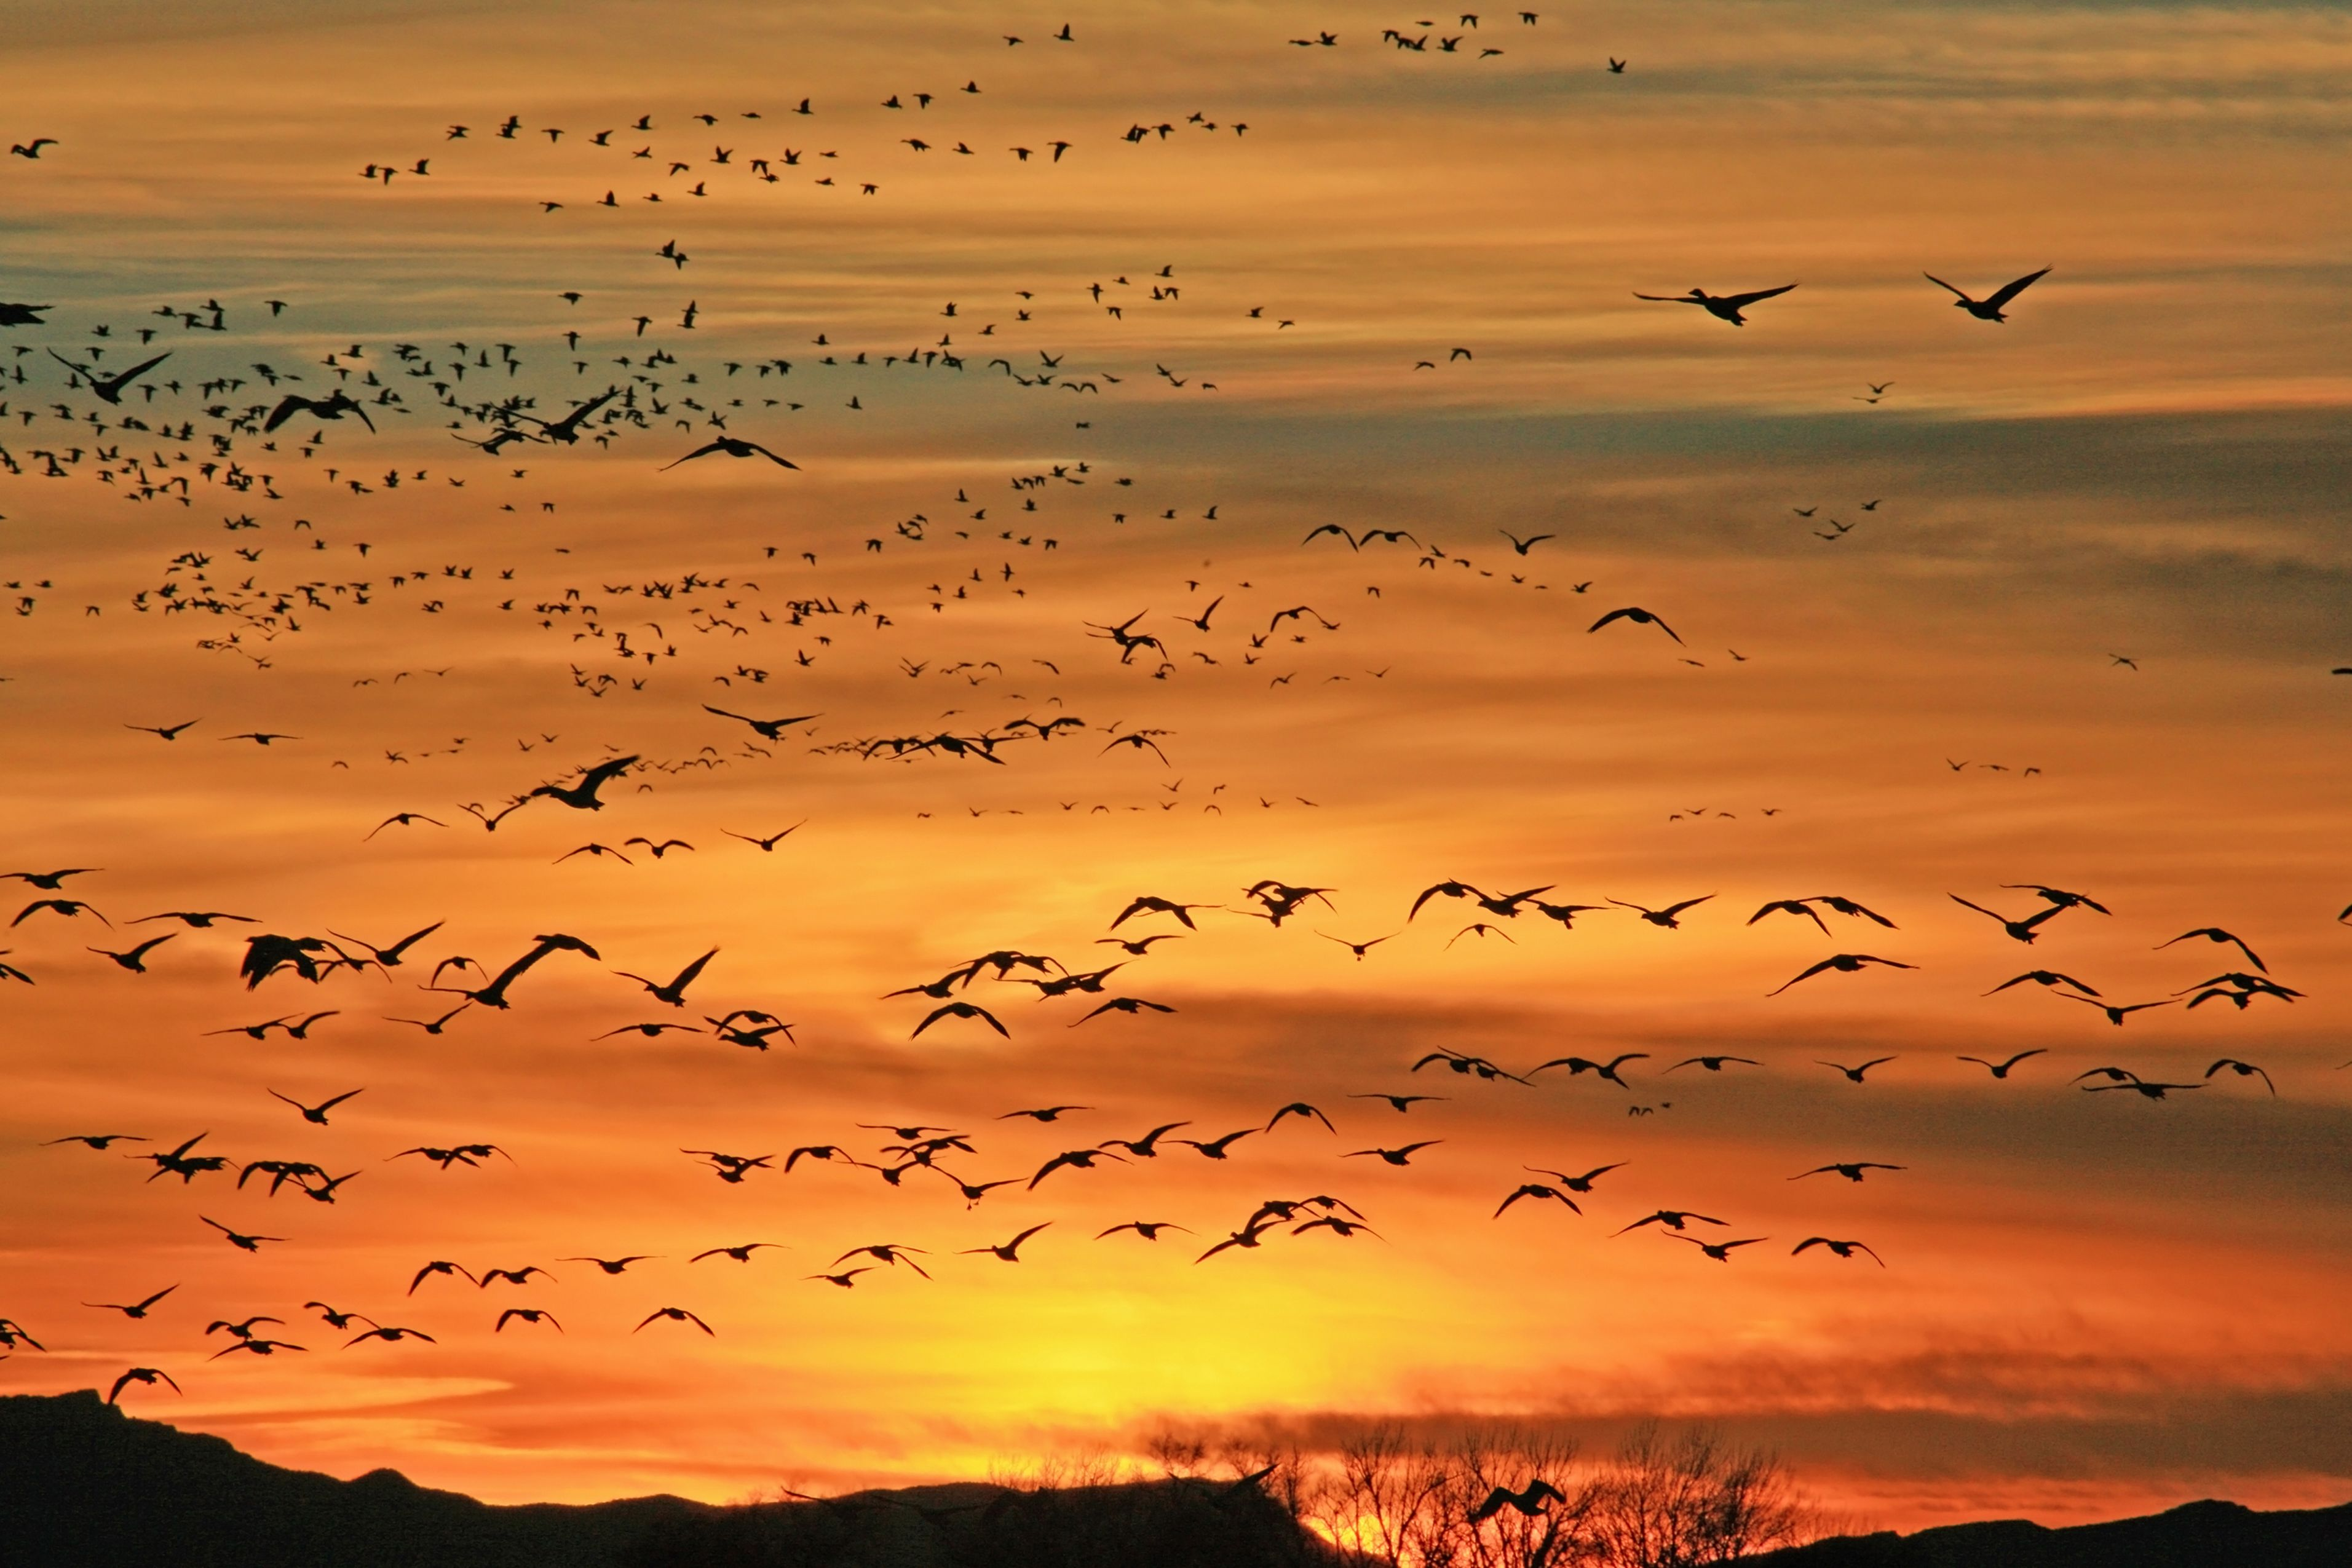 February - The Delta Snow Goose Festival is held on the precise days that thousands of Snow Geese begin their 3,000 mile voyage from Southern California to Canada, with Delta being along their migration path. Crafts, quilt show, 5/10 K, games and more.